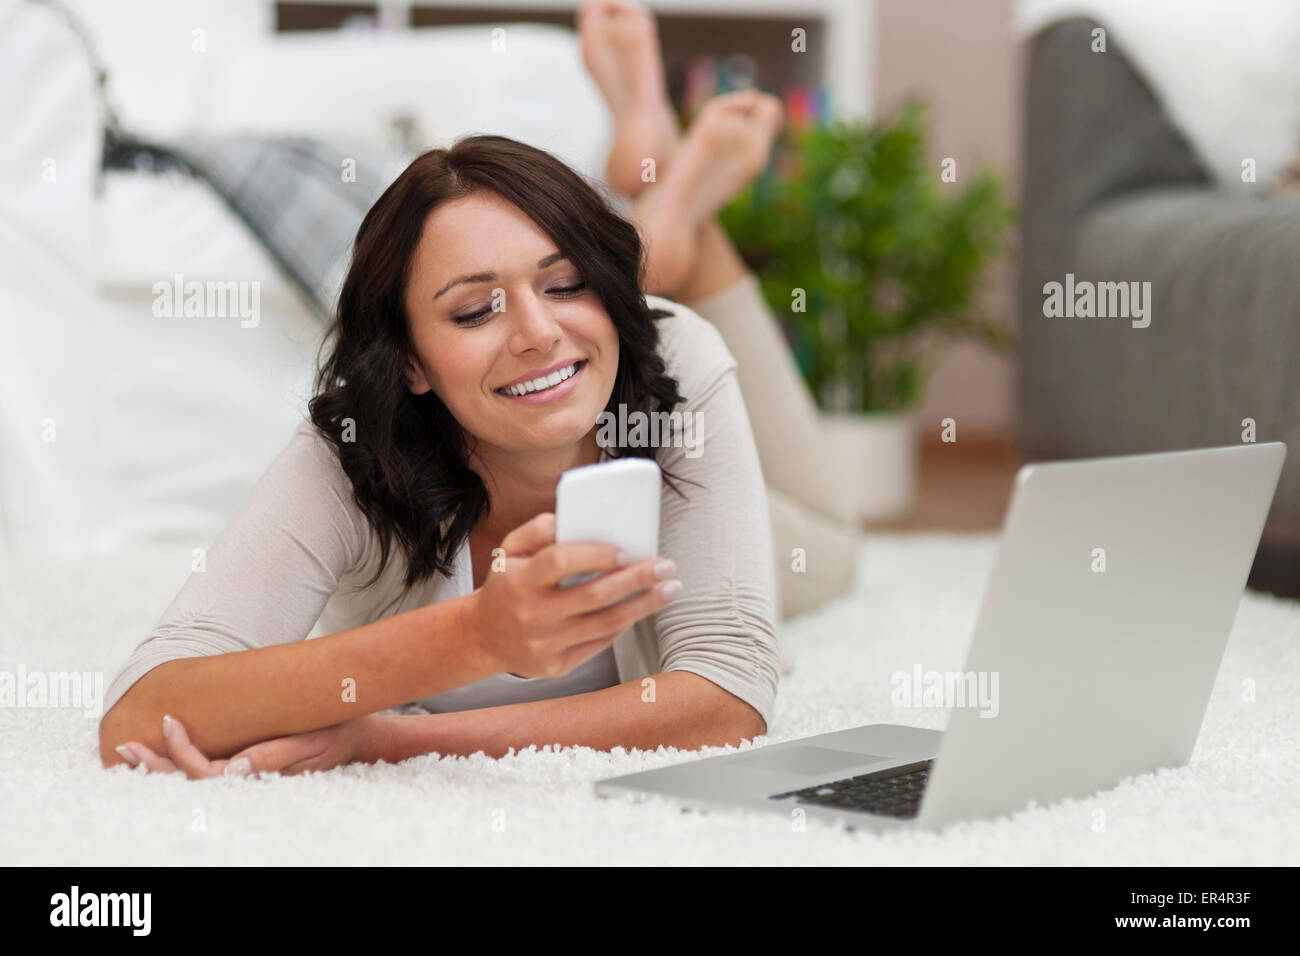 Connecting with friends has never been easier. Debica, Poland - Stock Image